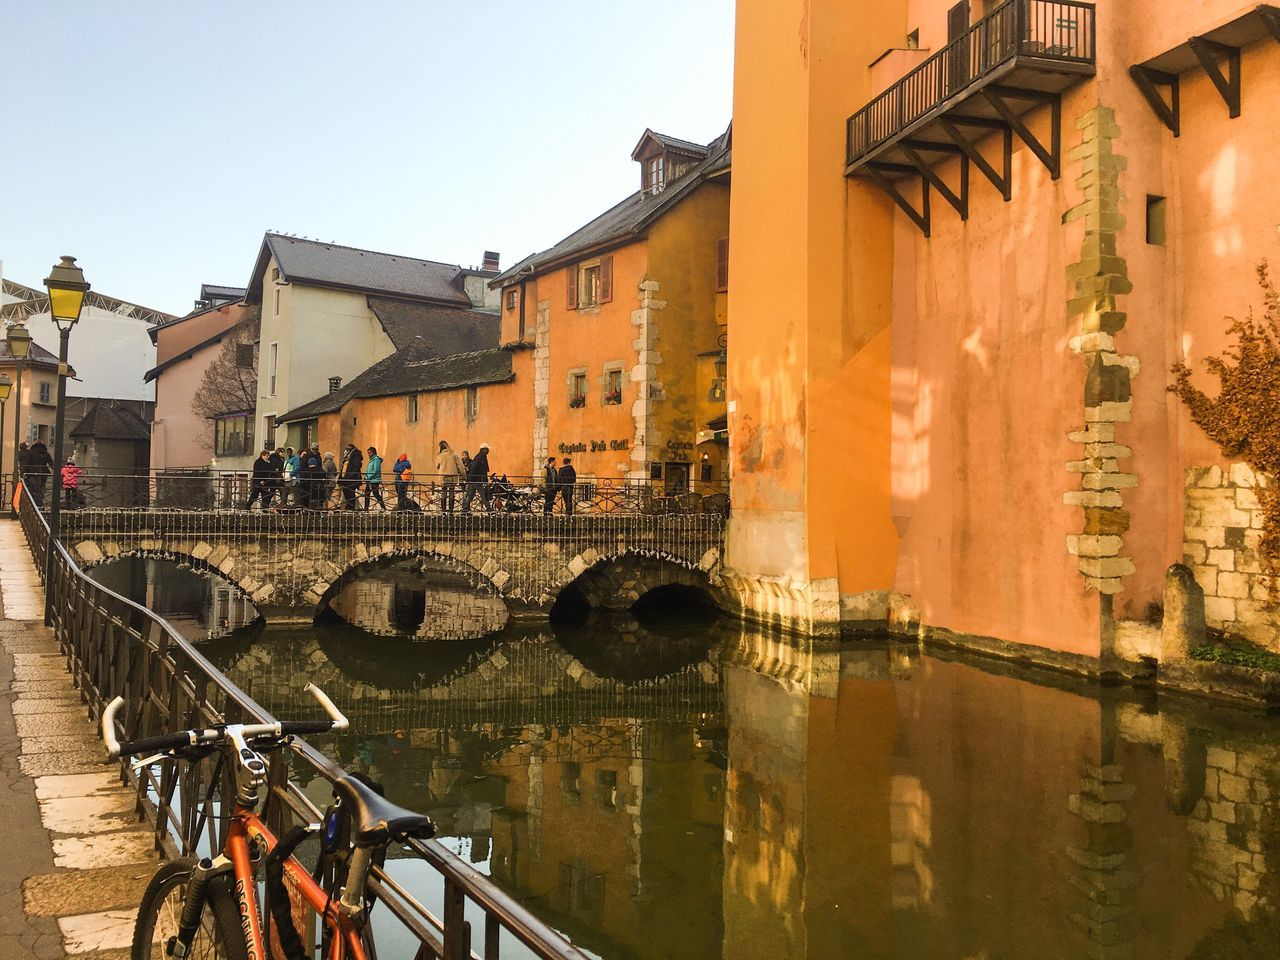 architecture, building exterior, built structure, bicycle, canal, outdoors, day, large group of people, real people, transportation, water, city, men, sky, people